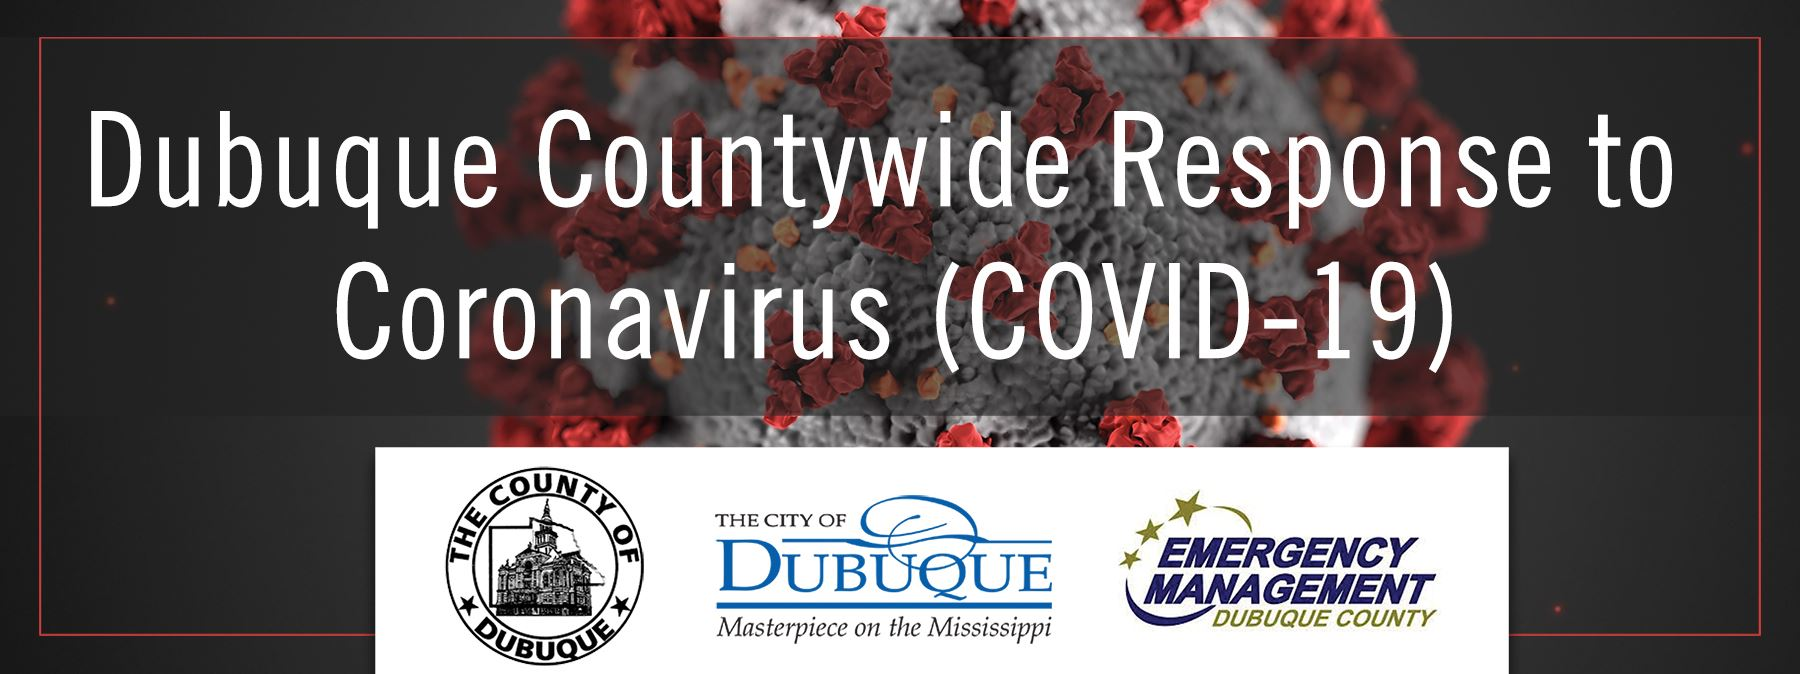 COVID-19 Countywide Response